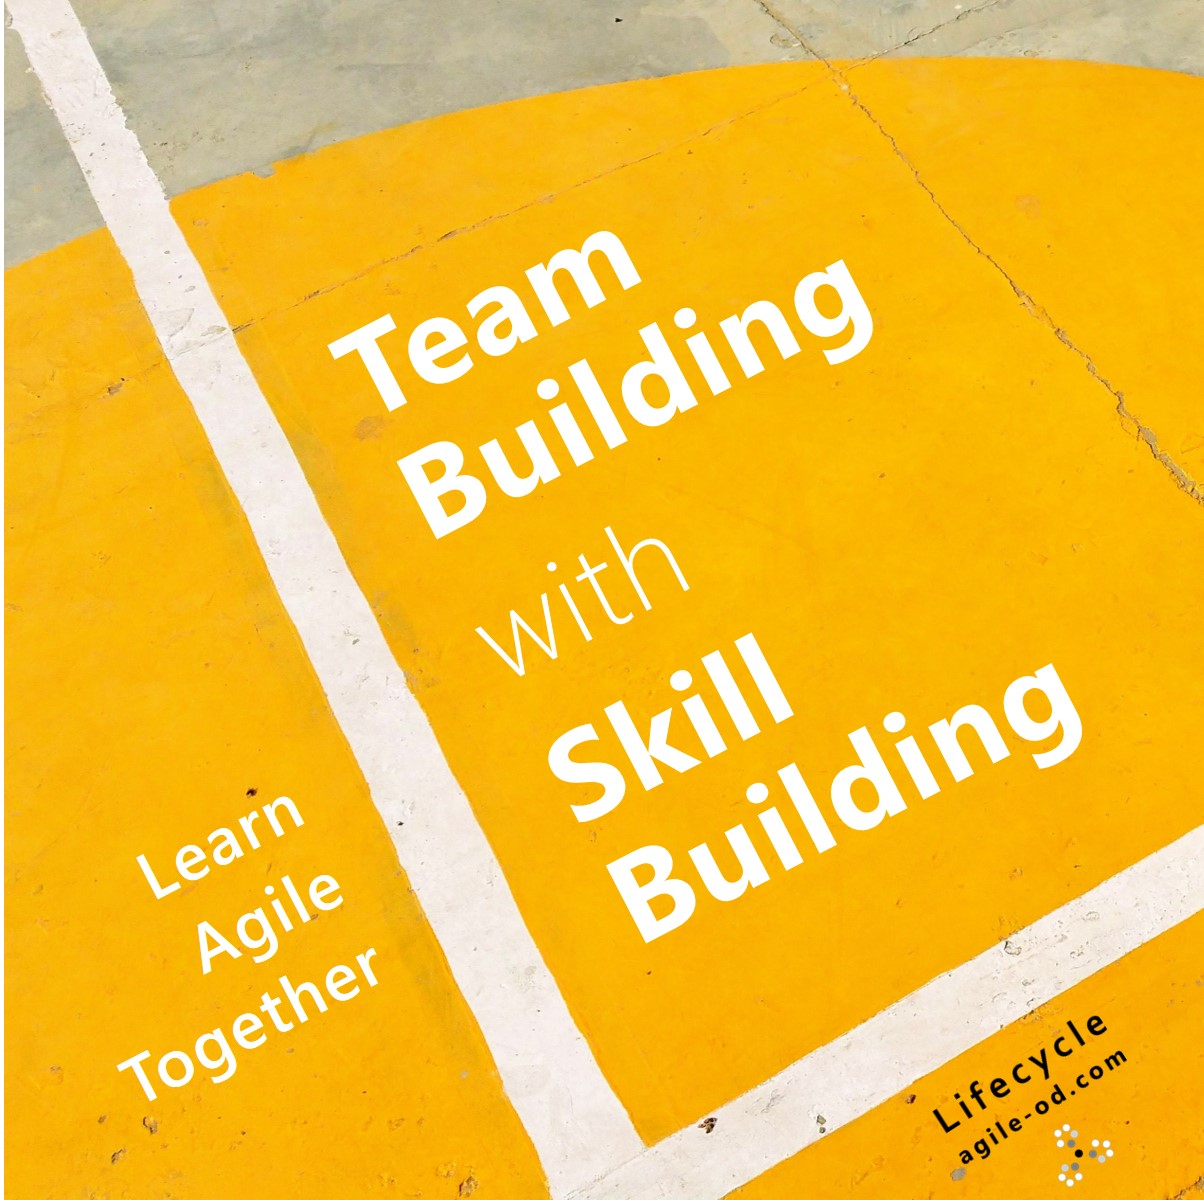 Team Building with Skill Building